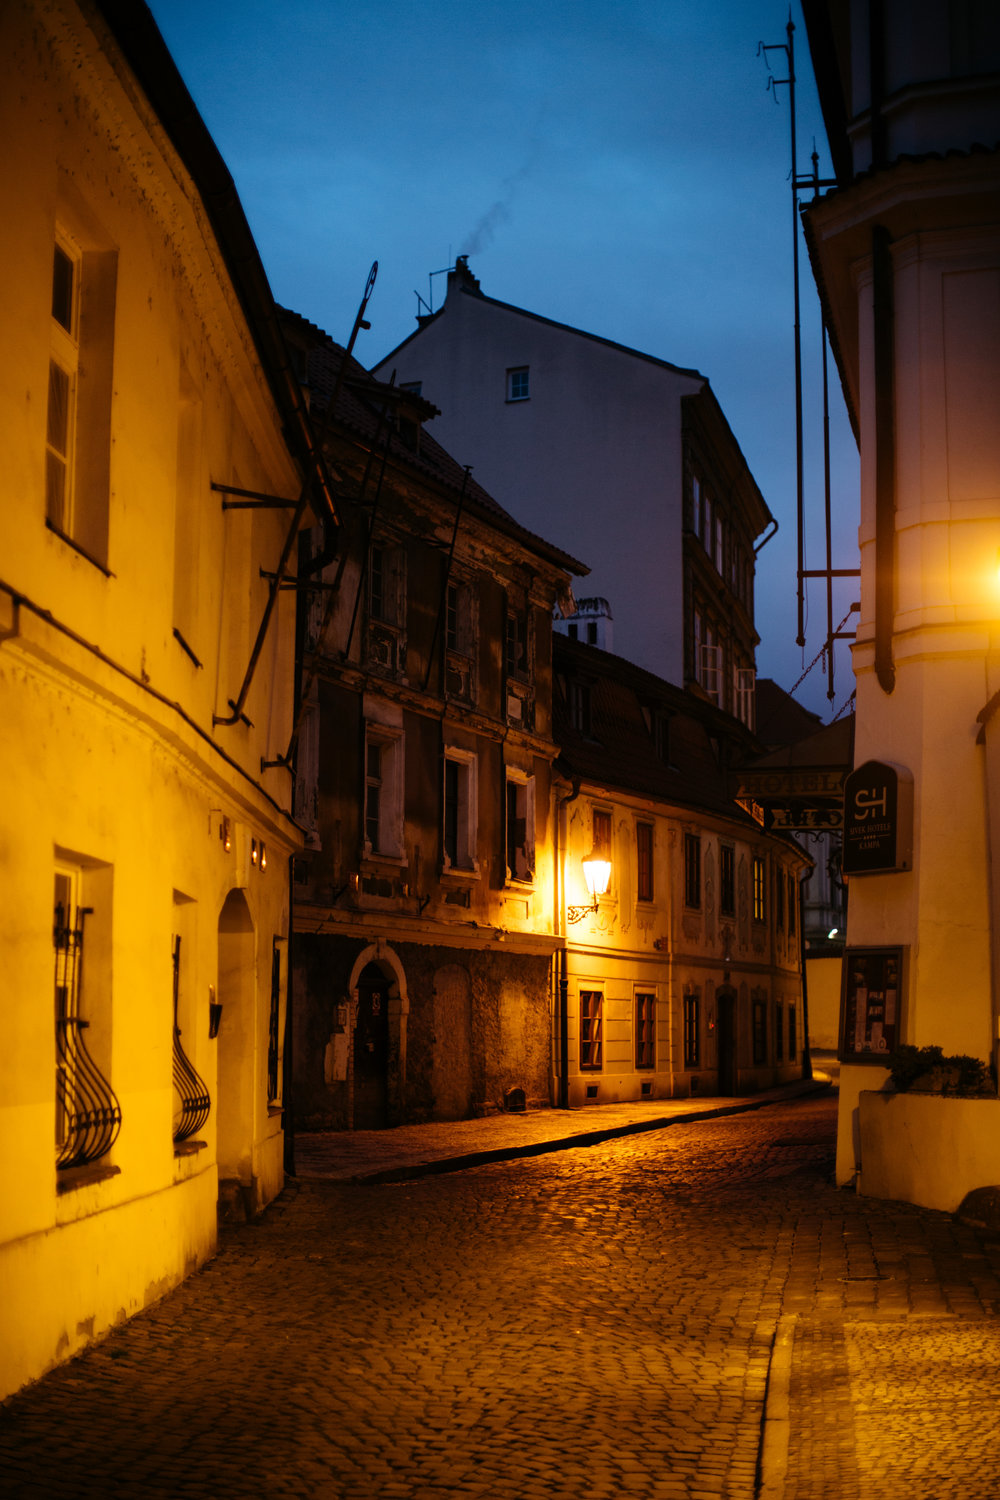 Evening walks on Czech cobblestone pathways...